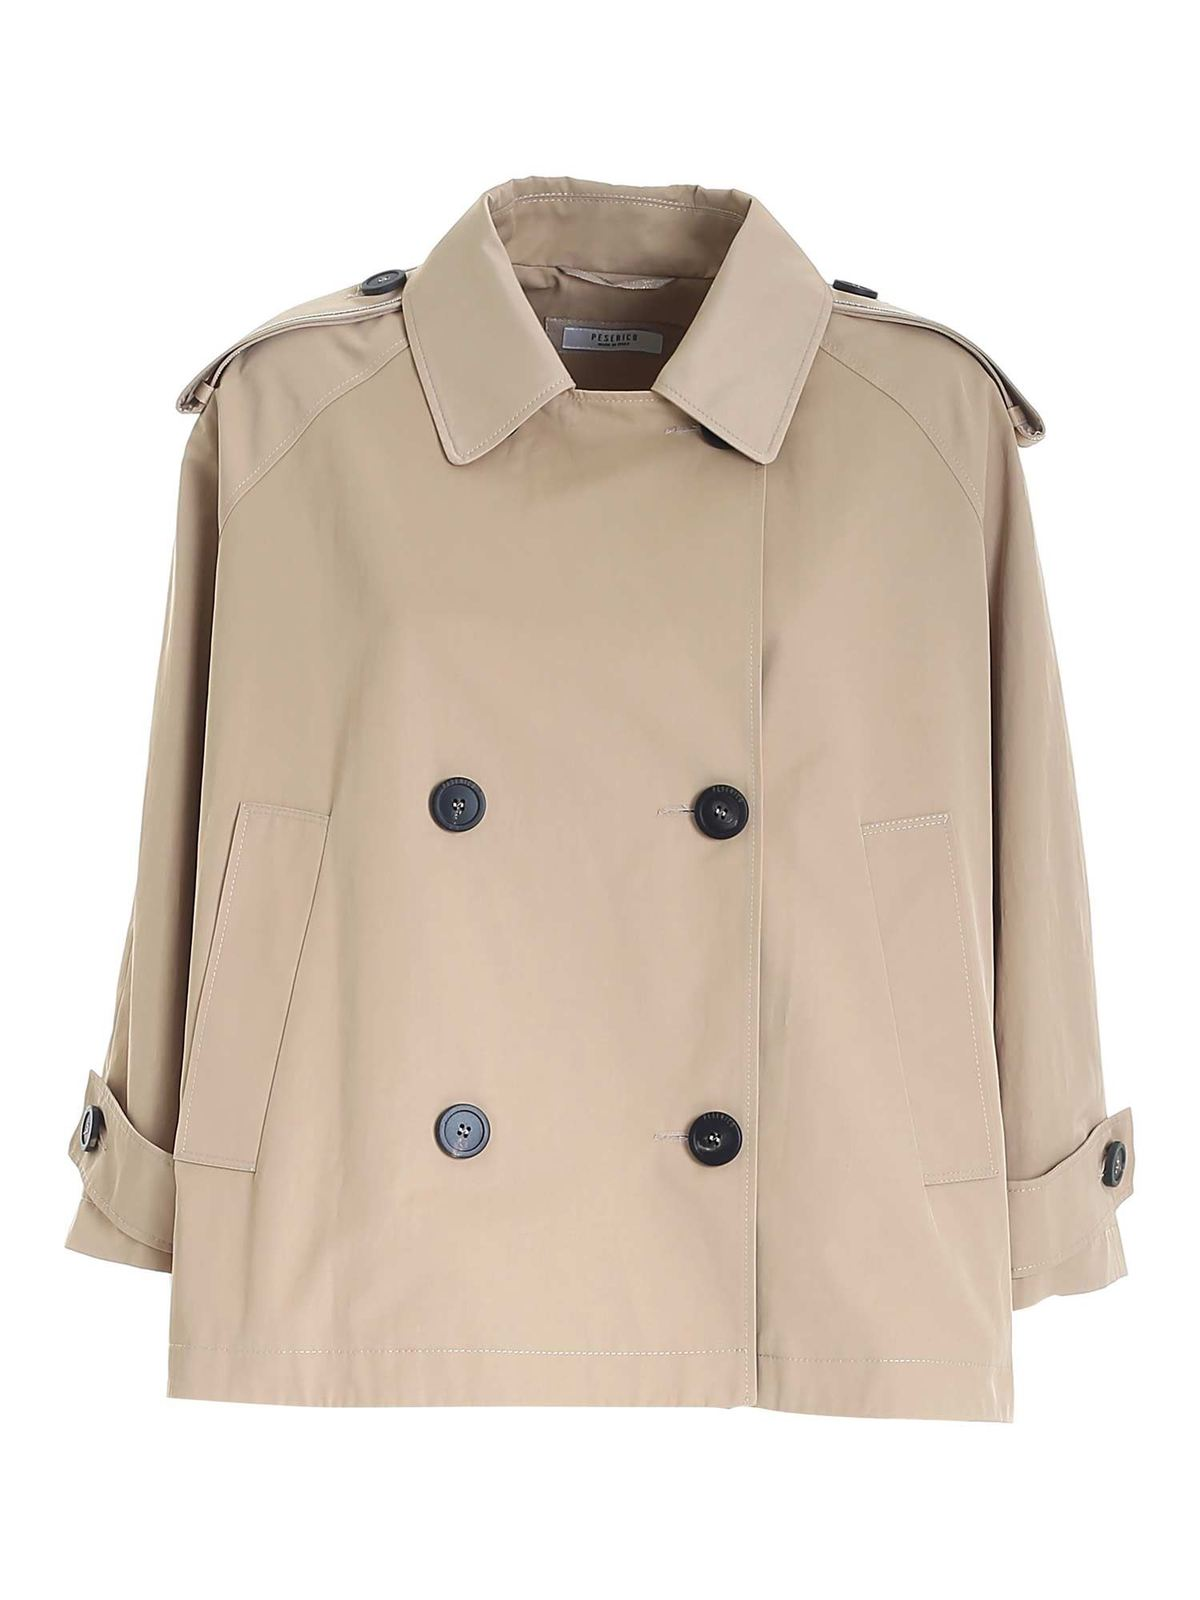 Peserico DOUBLE-BREASTED TRENCH COAT IN BEIGE